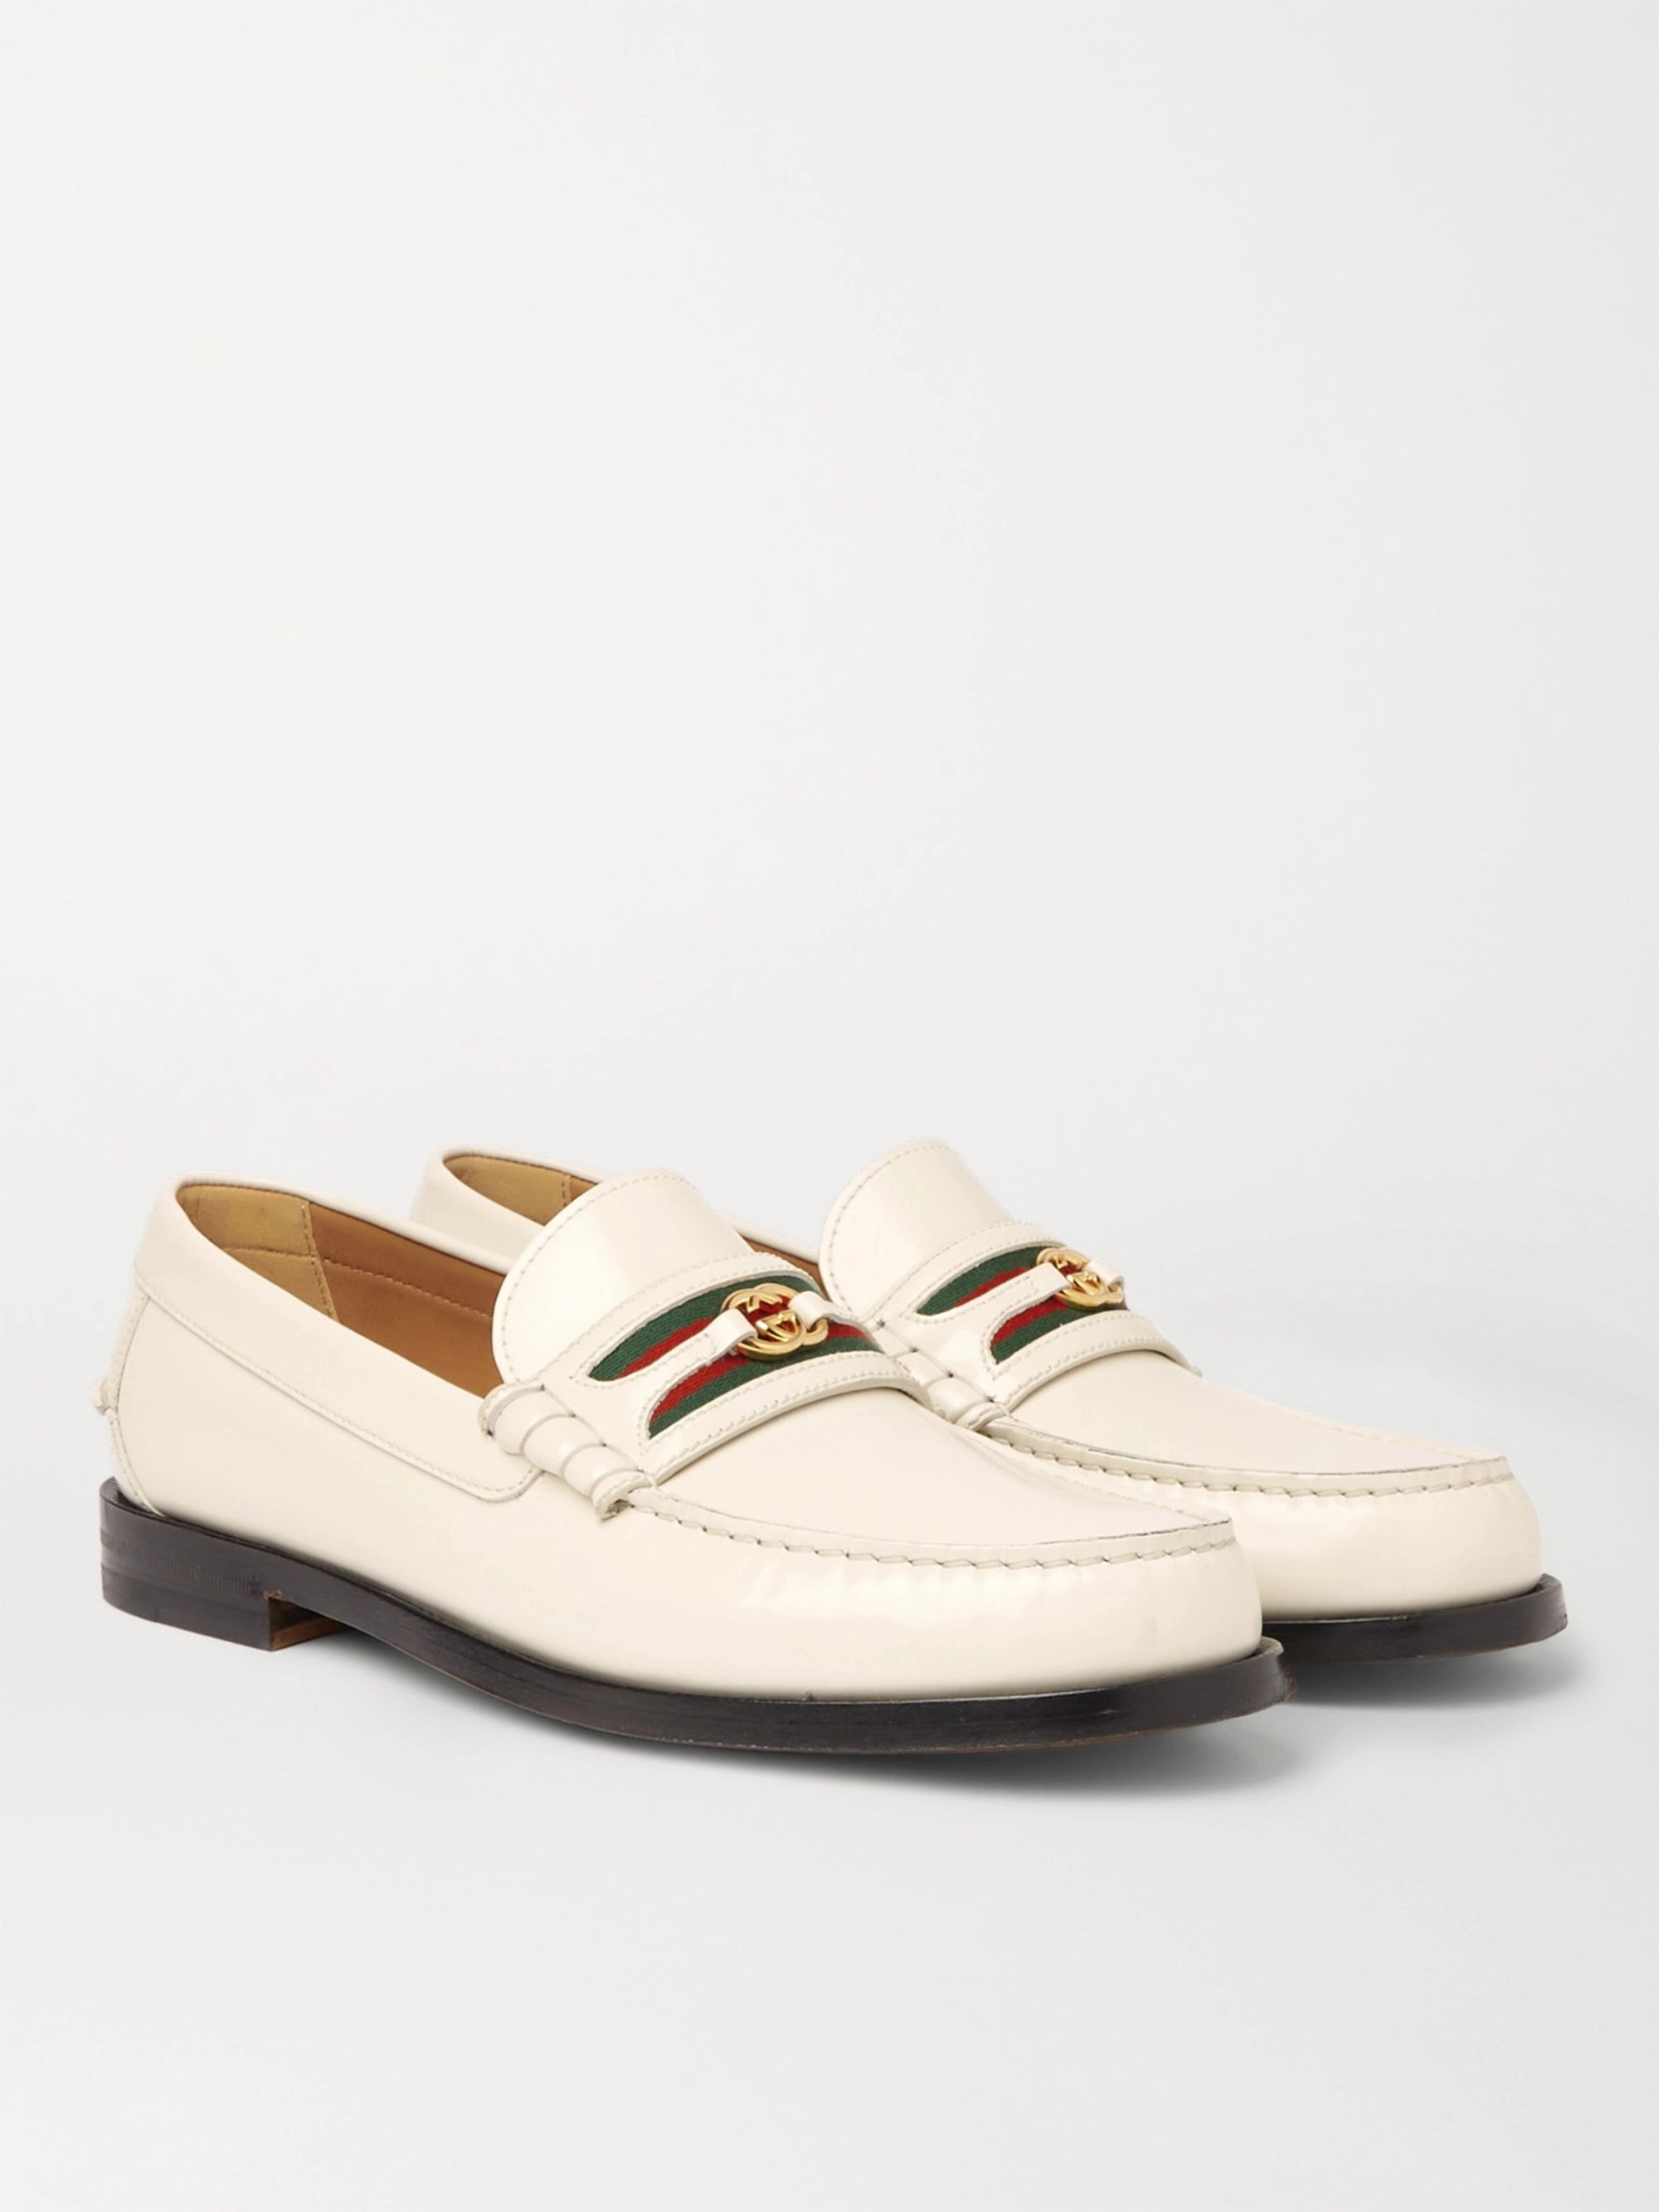 GUCCI Kaveh Webbing-Trimmed Leather Loafers